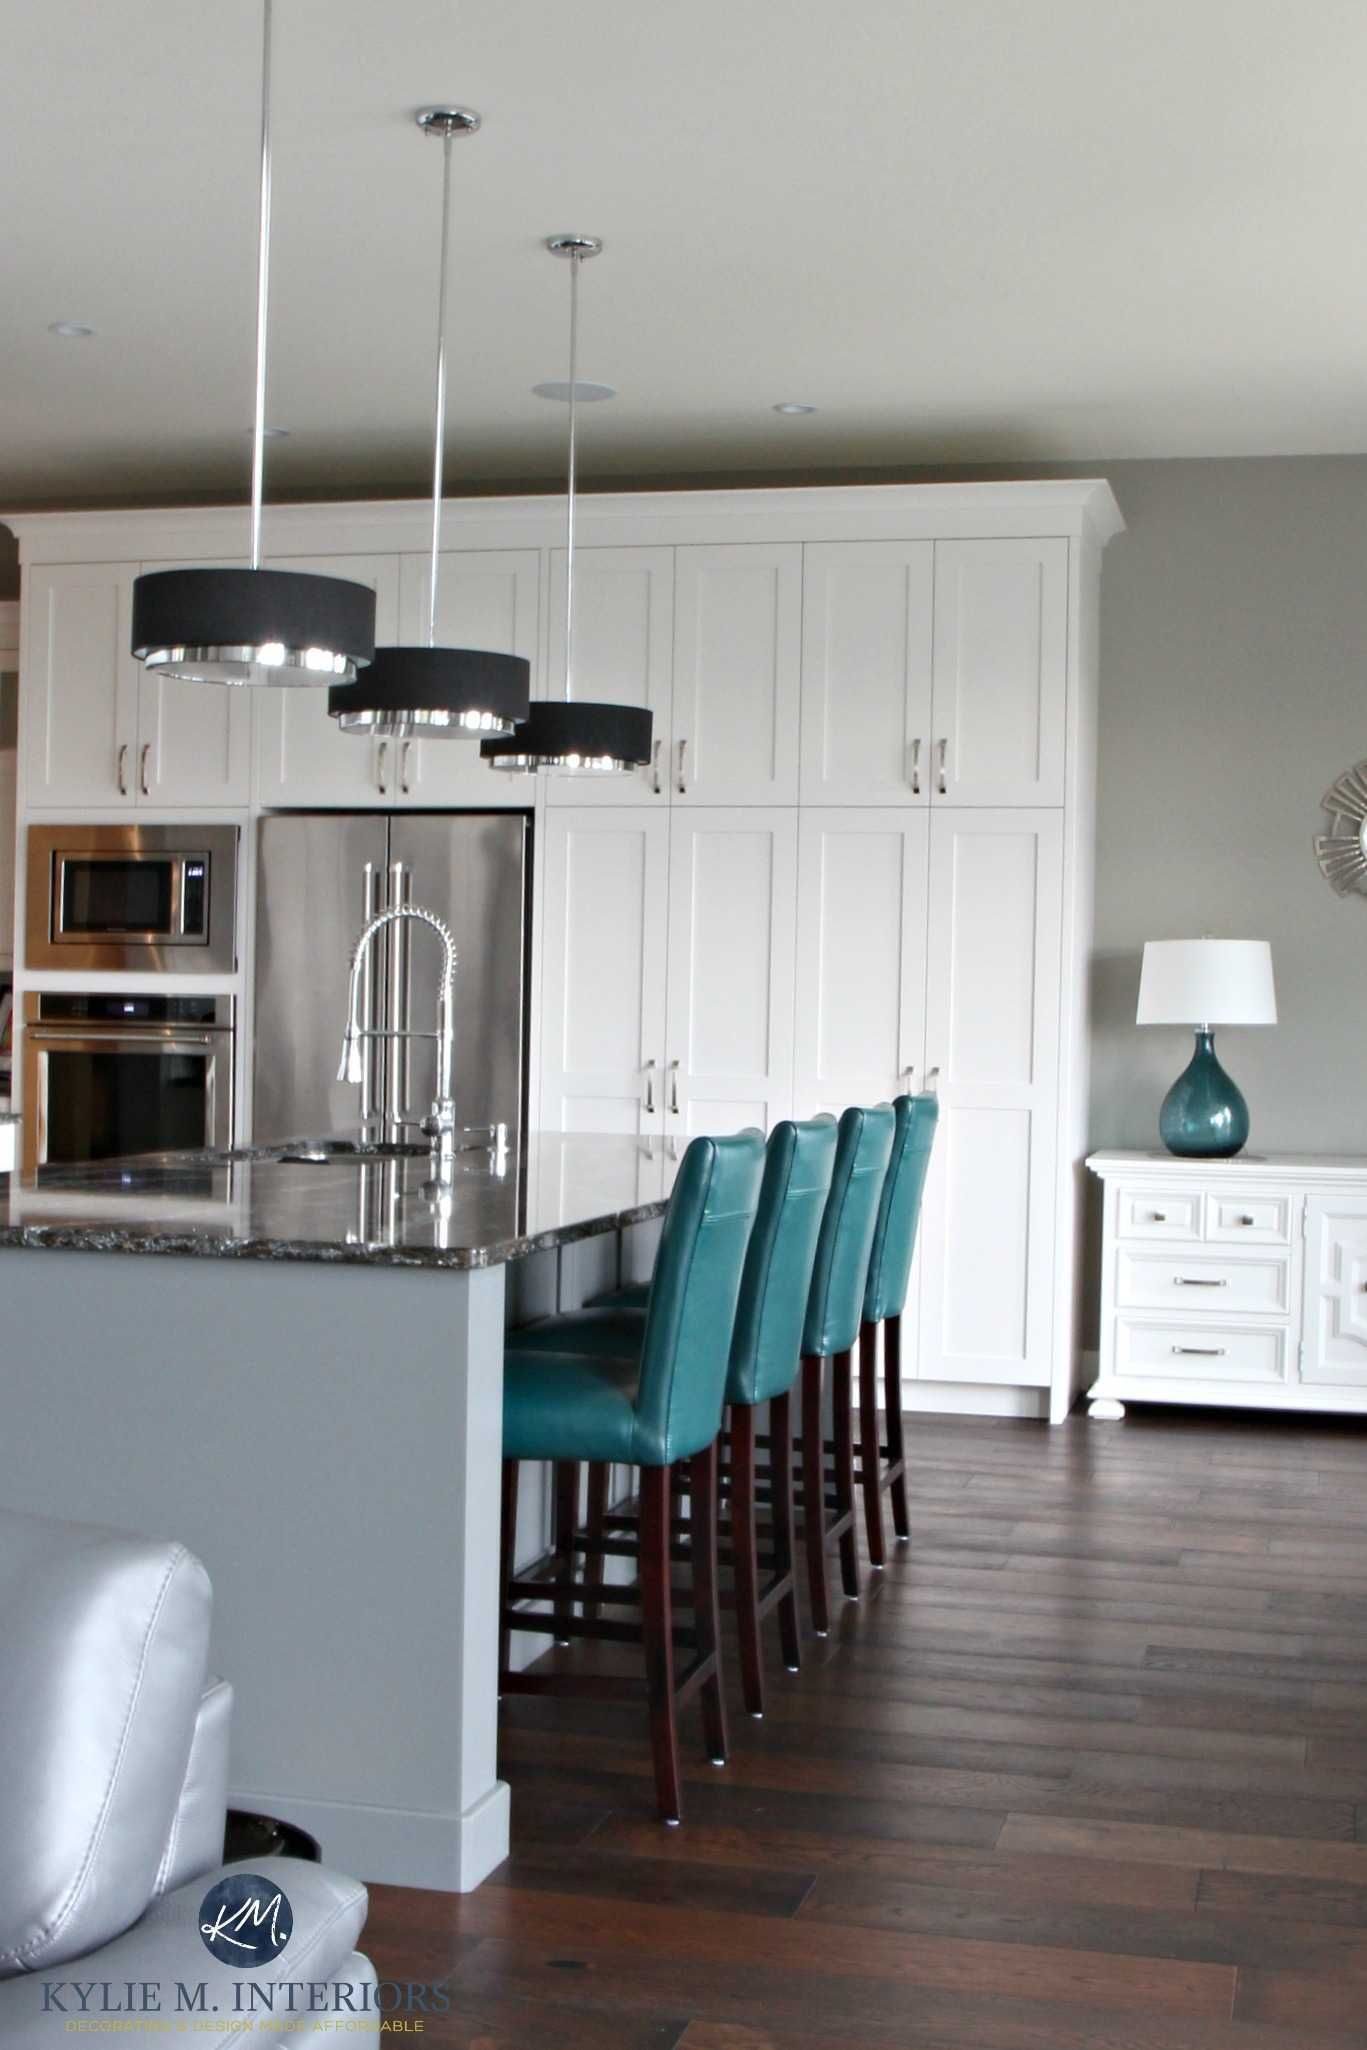 20+ Unique Fresh Grey and Turquoise Kitchen Ideas images